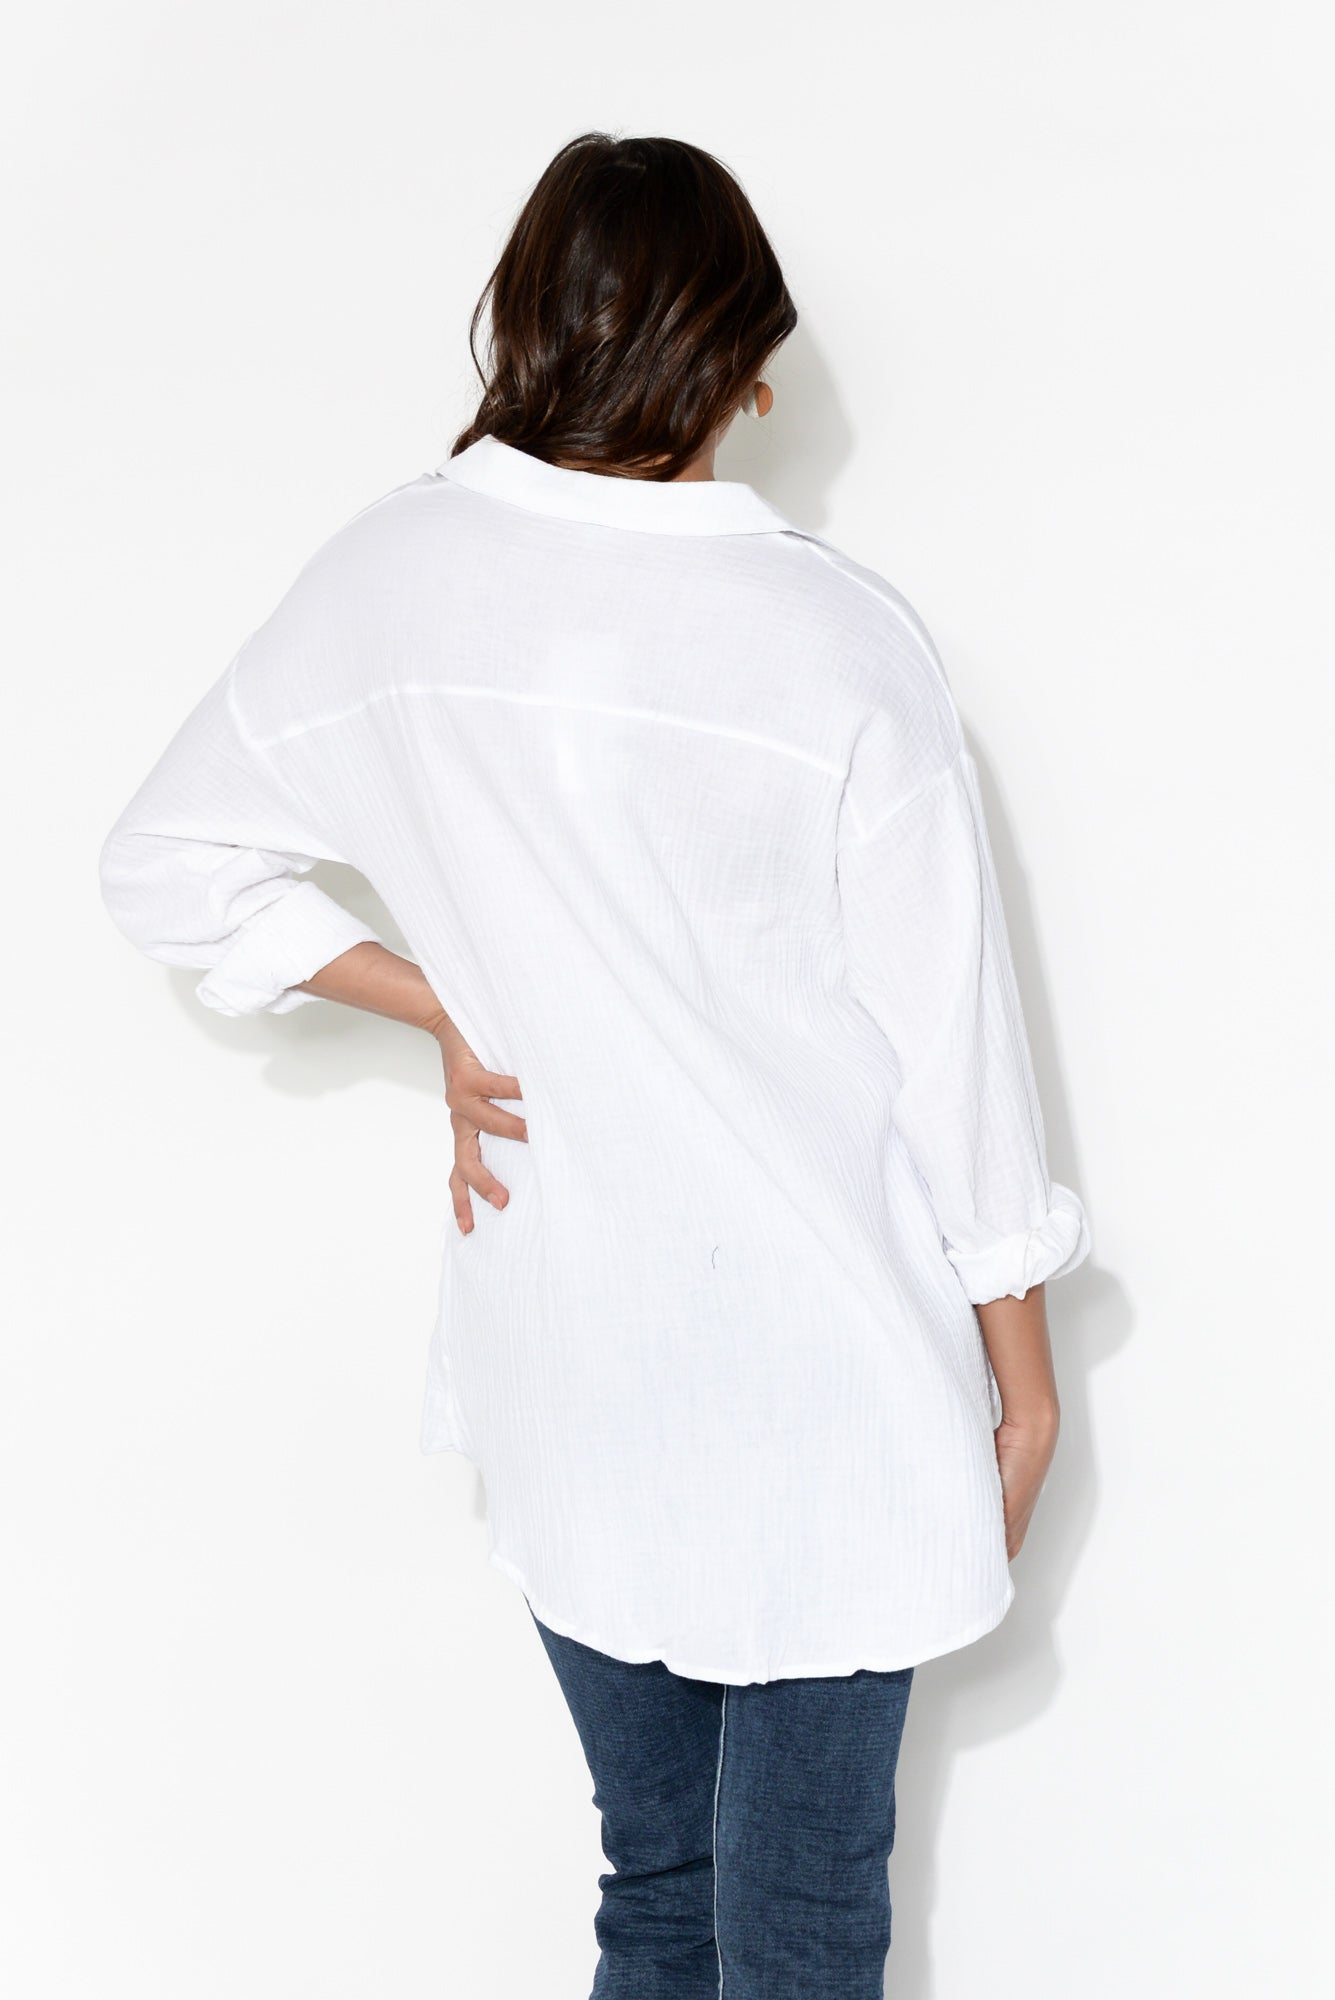 Vivian White Collared Top